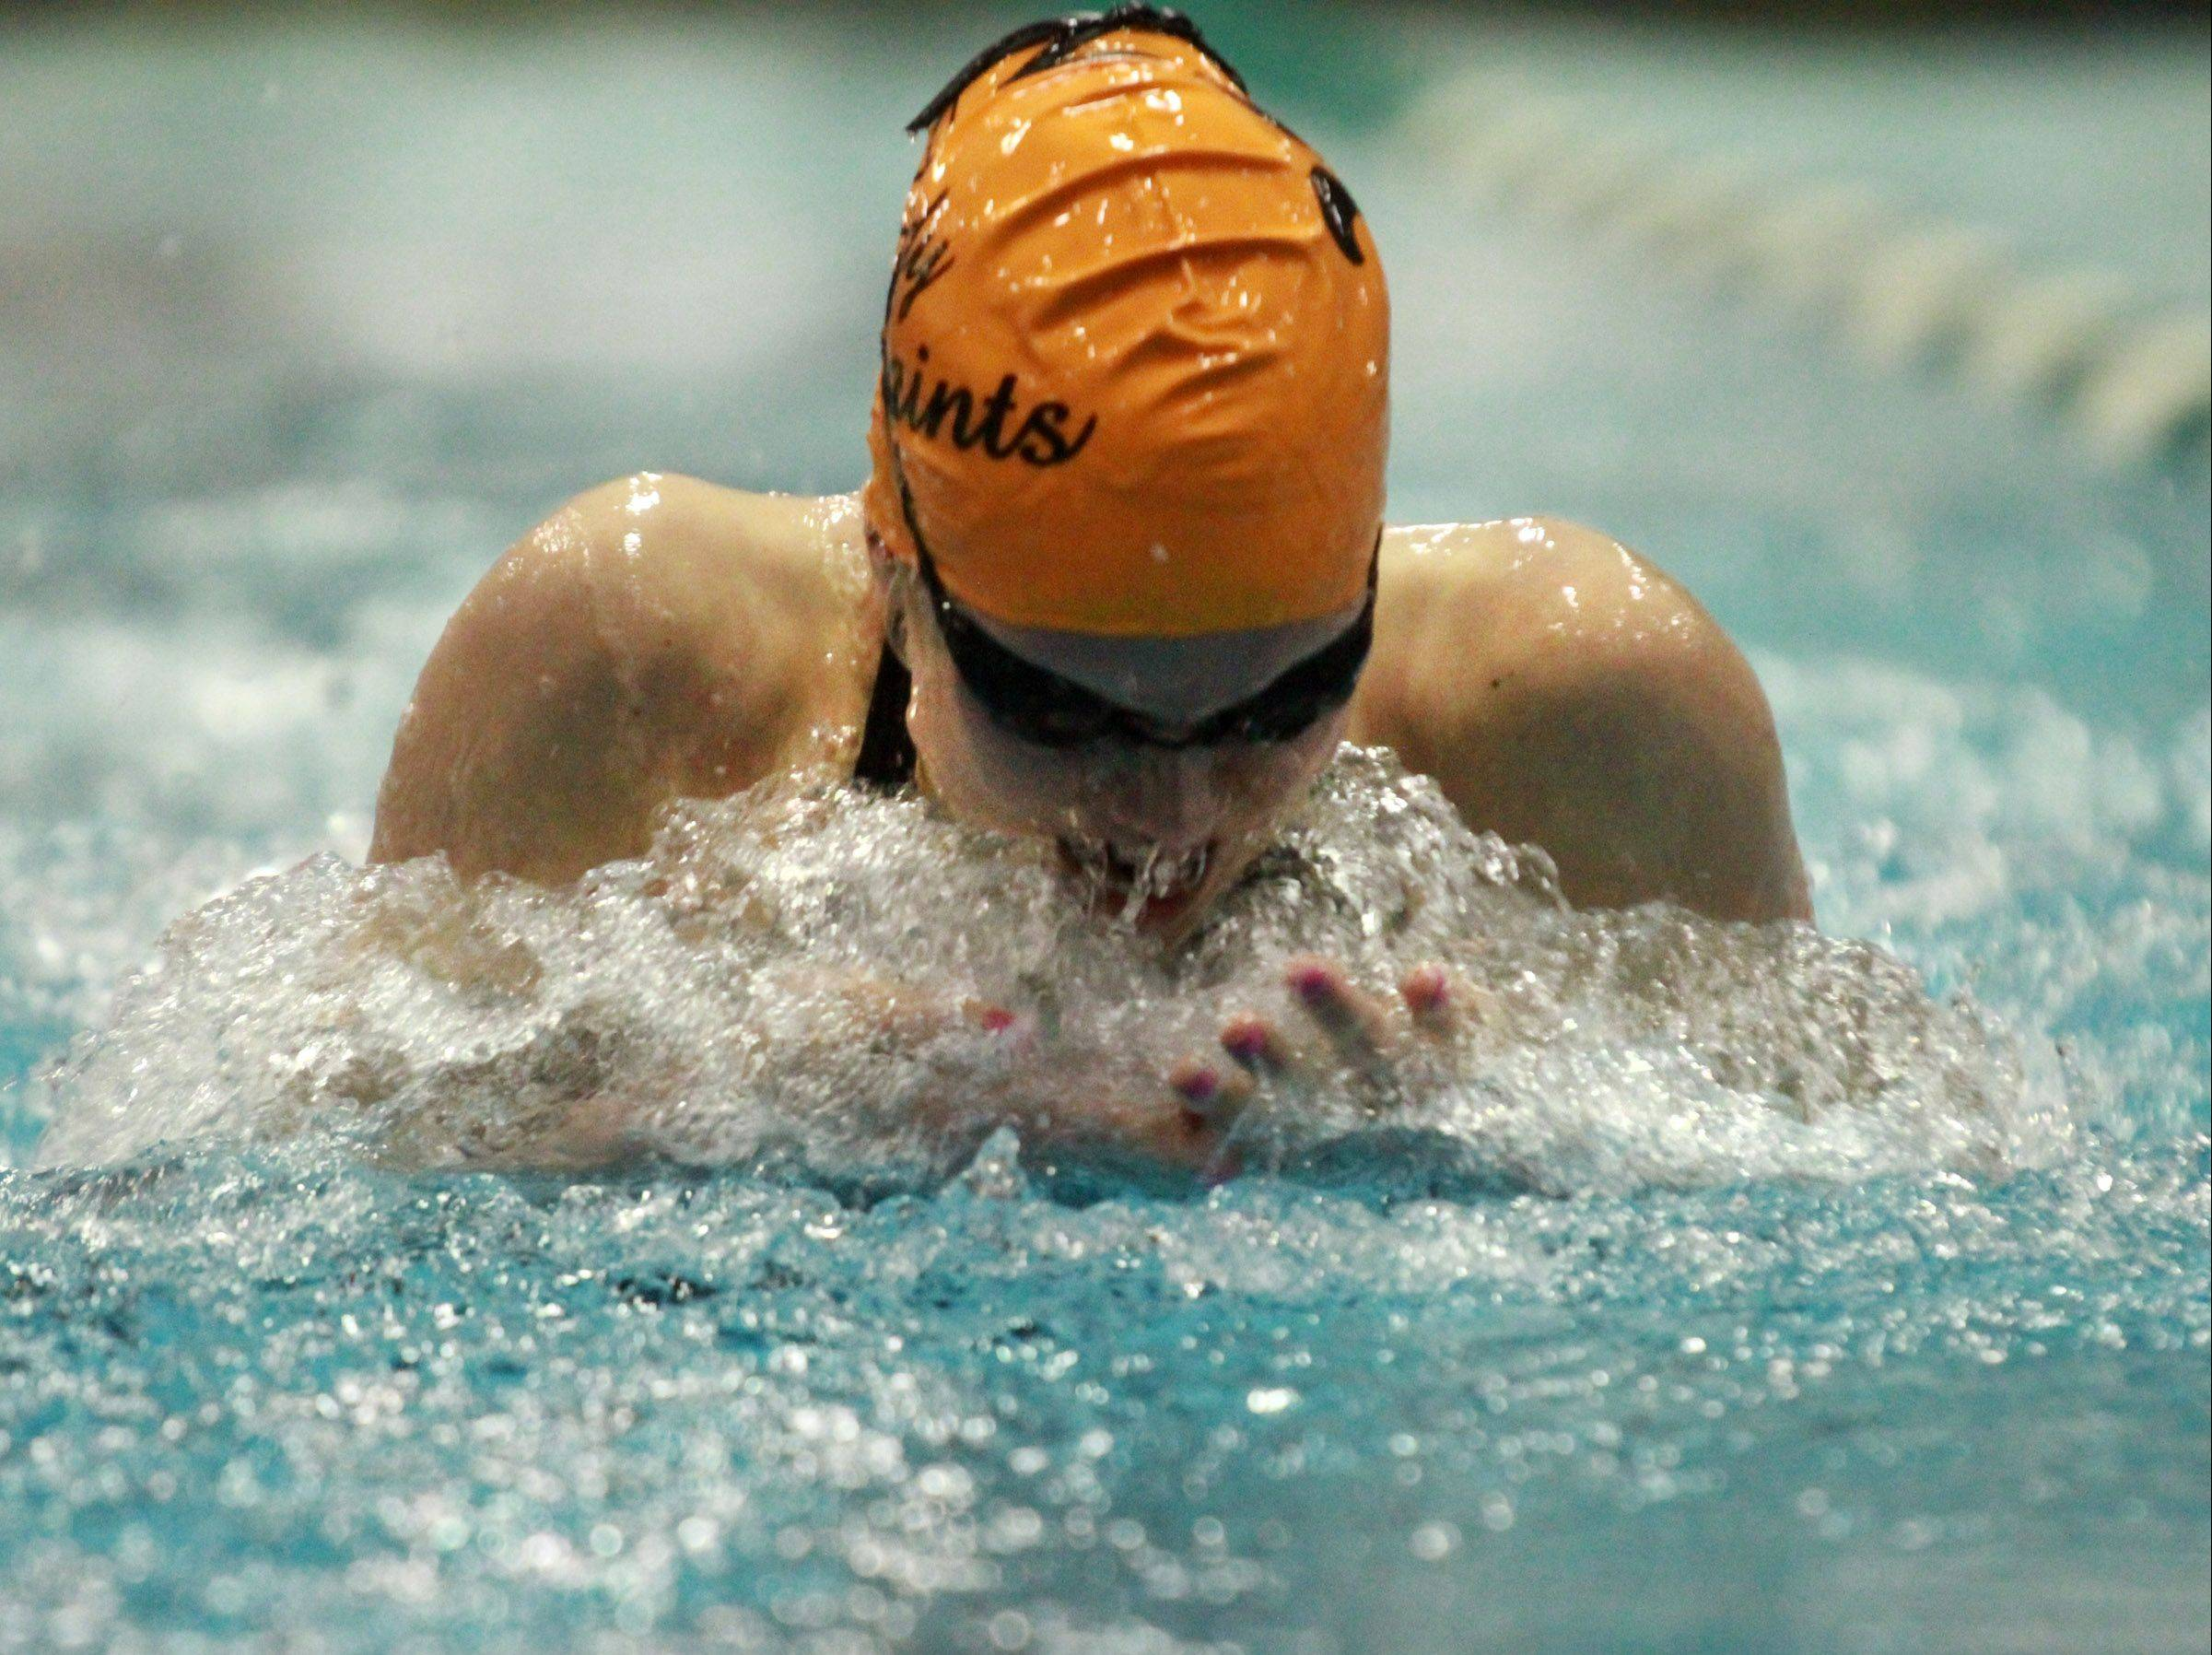 St. Charles East Shea Hoyt placed third in the 100-yard breaststroke at the girls state swimming finals on Saturday at New Trier.